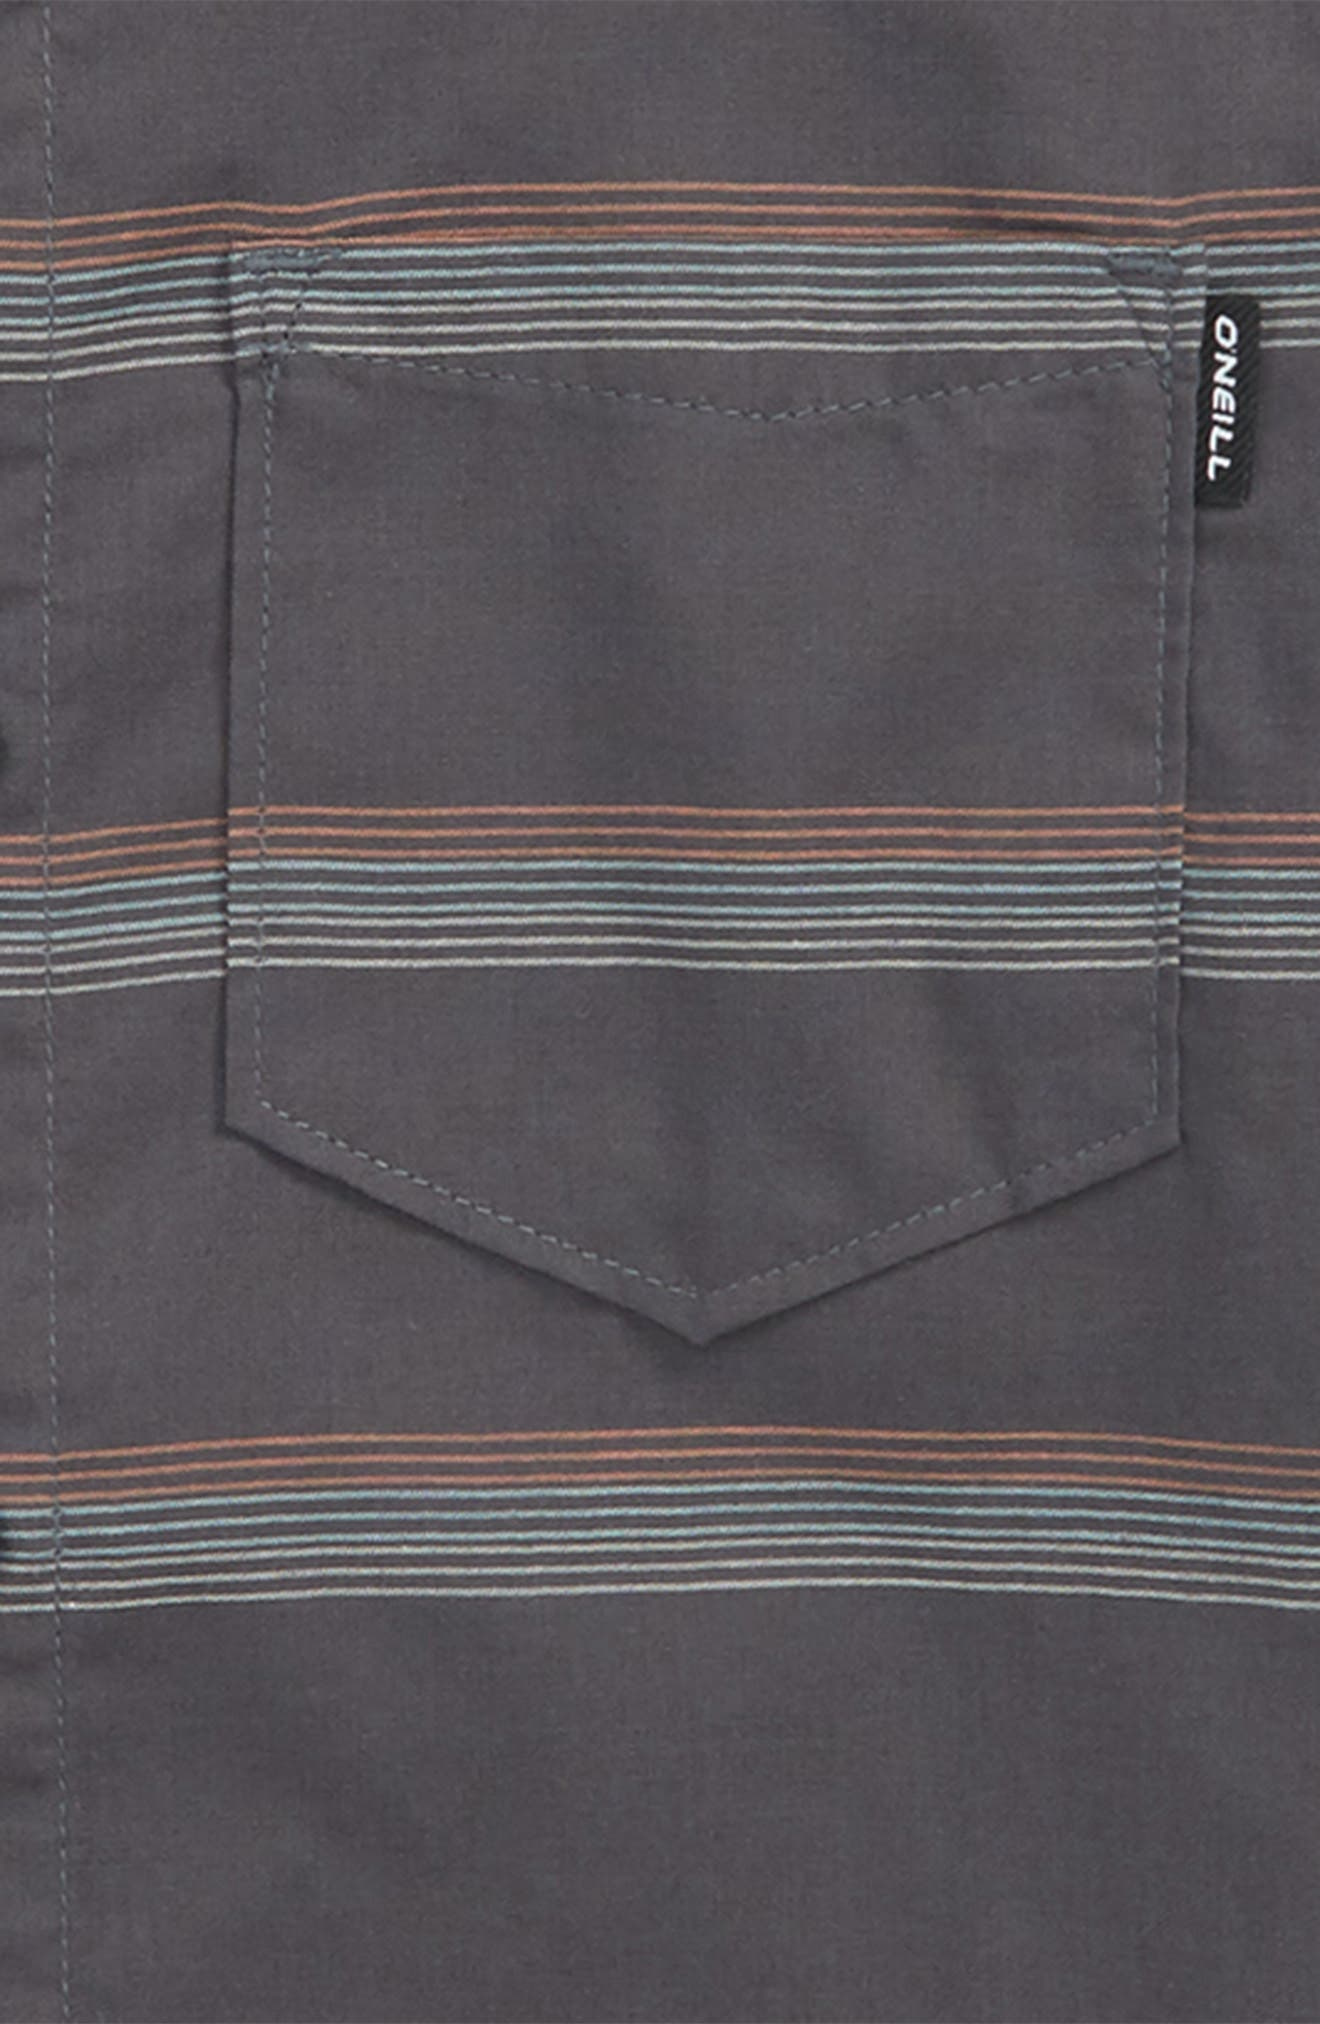 Pickett Woven Shirt,                             Alternate thumbnail 2, color,                             Asphalt